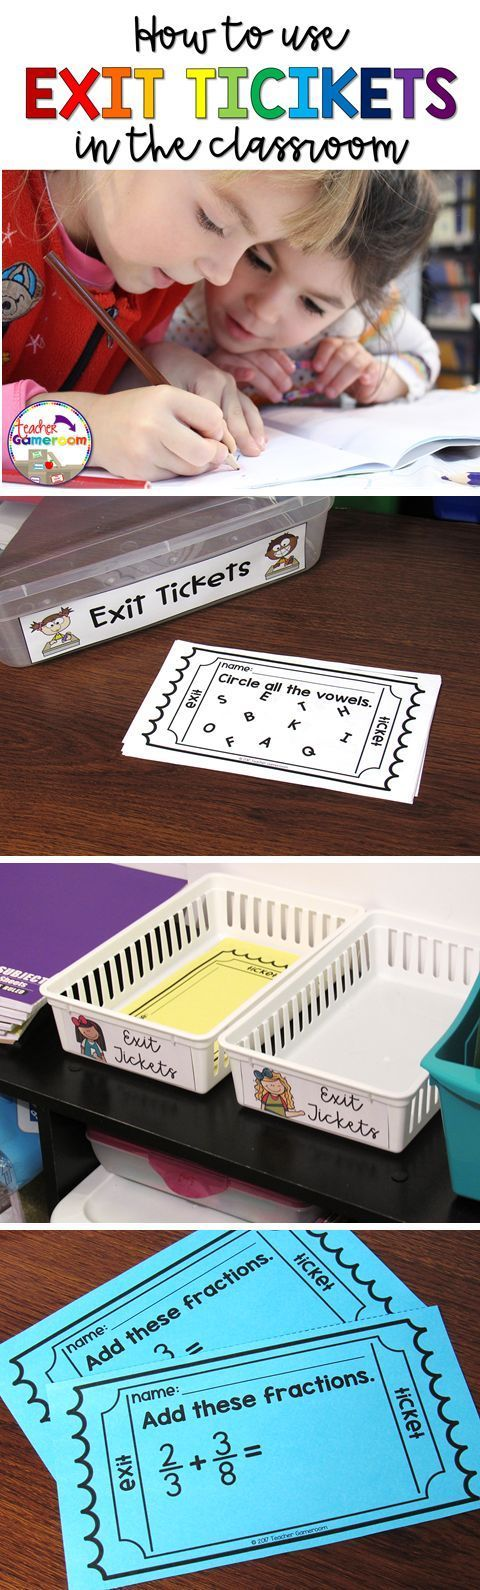 Free Template! Use exit tickets in the classroom